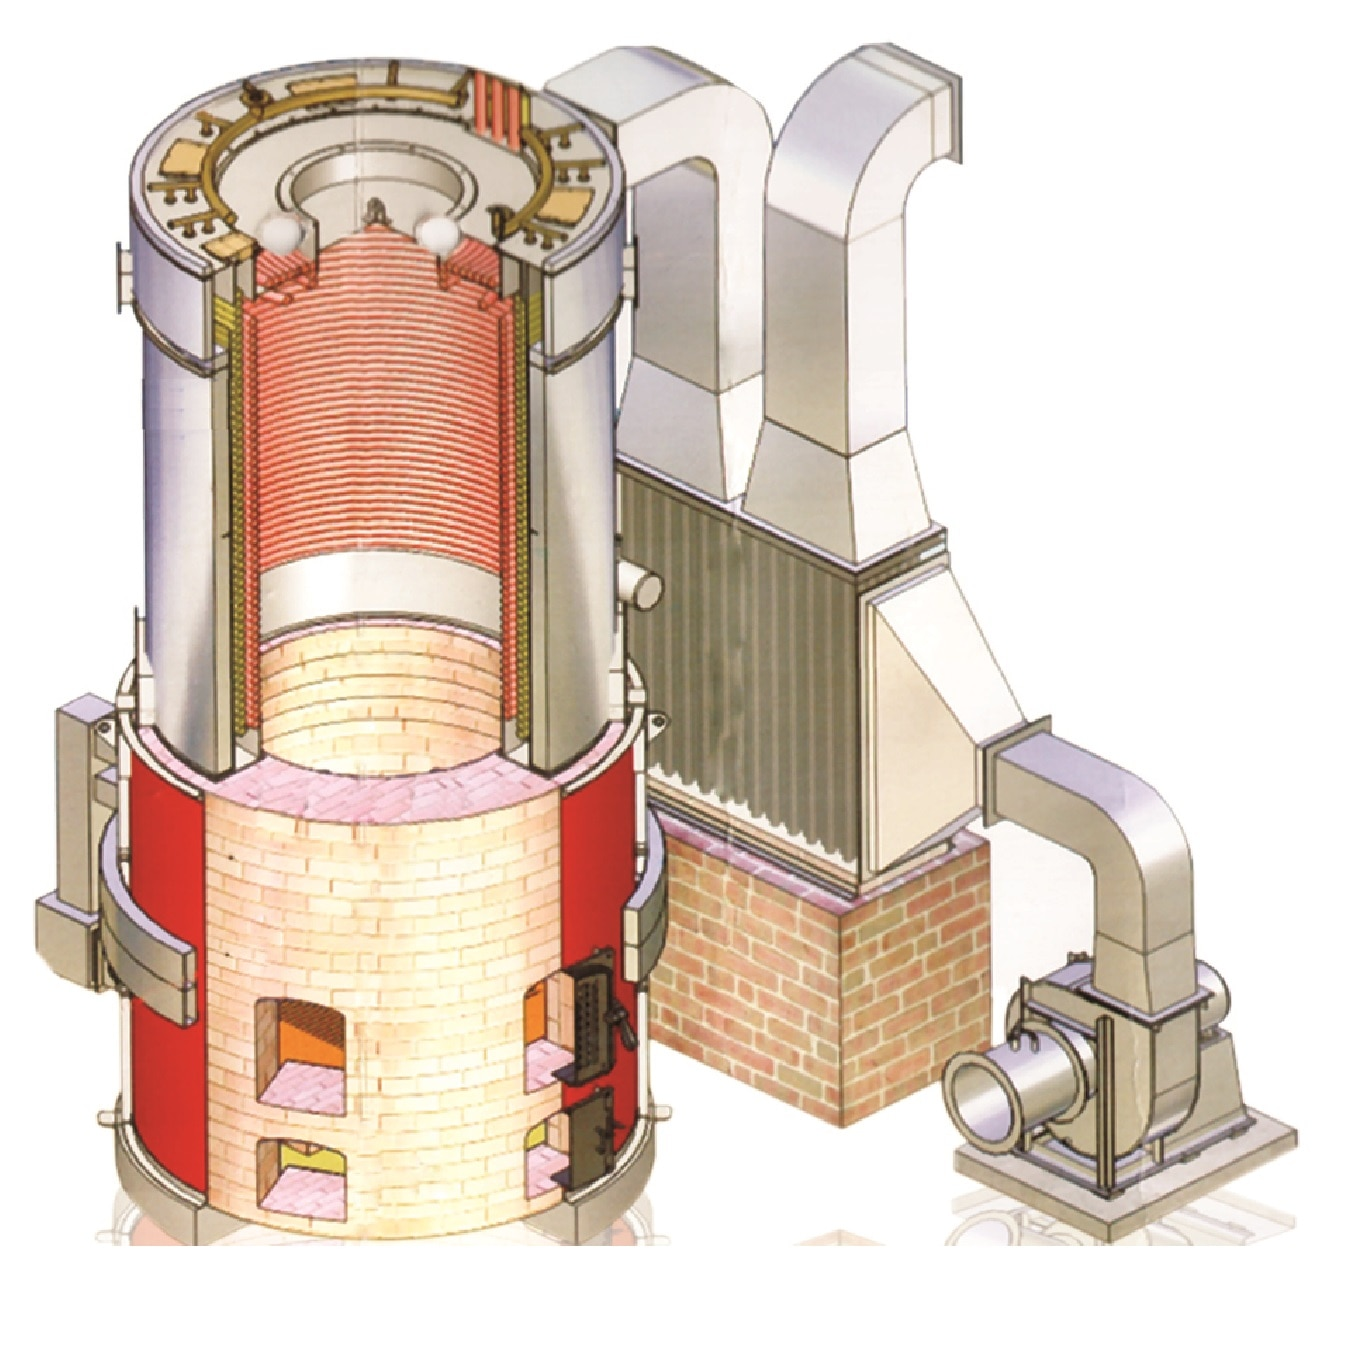 Sectional view of Cyclonic Combustion Heat Exchange Unit